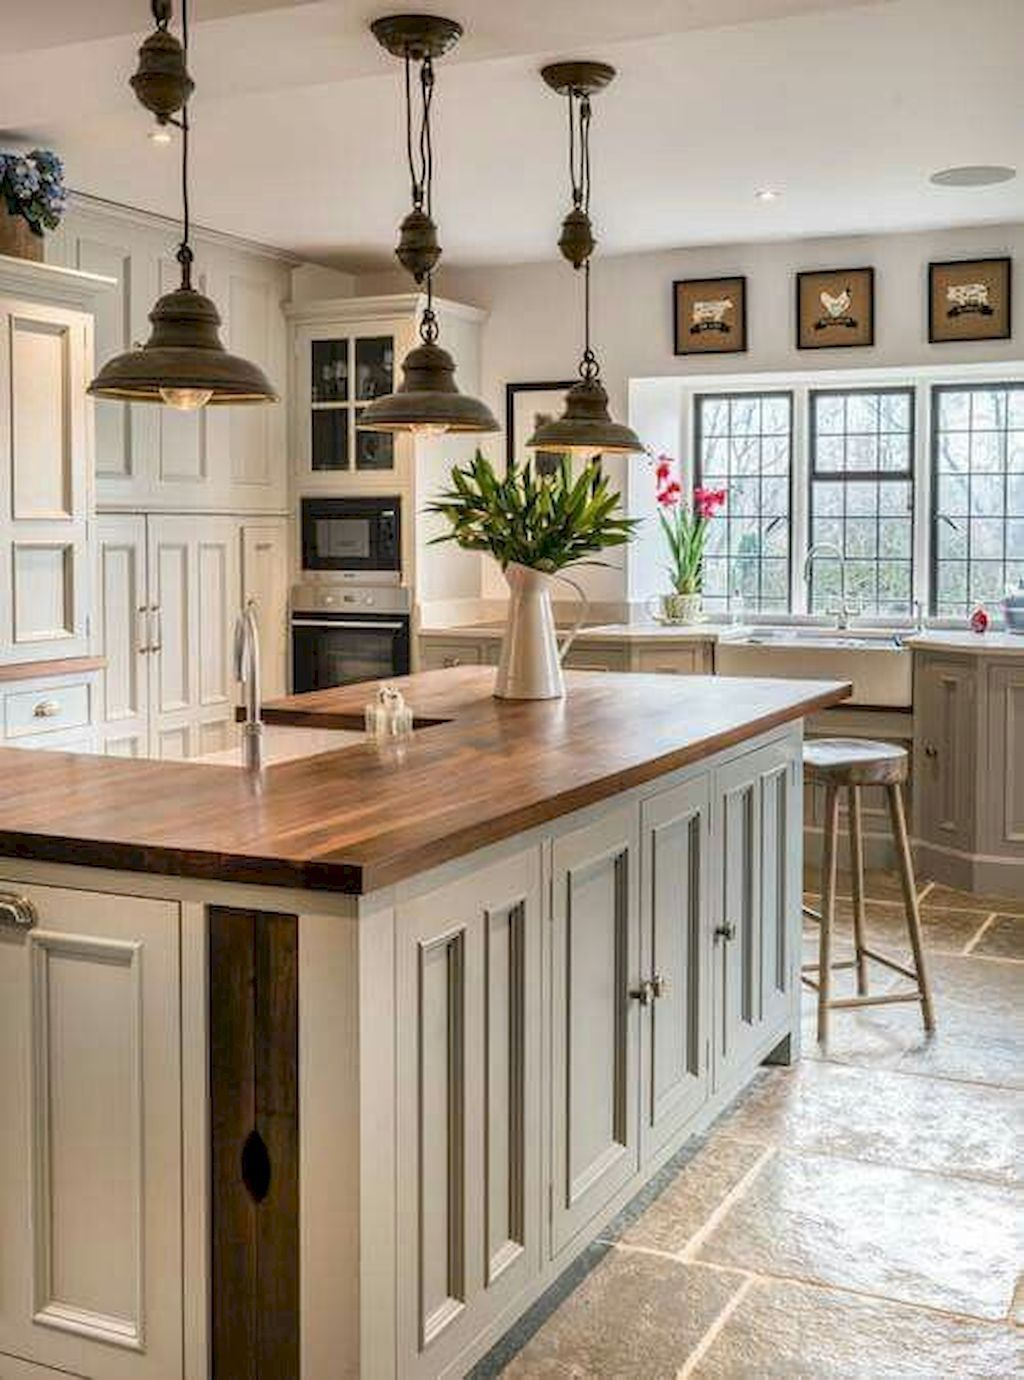 Cottage Kitchen Design Unique 40 Rustic Farmhouse Kitchen Design Ideas 7  Rustic Farmhouse Design Ideas